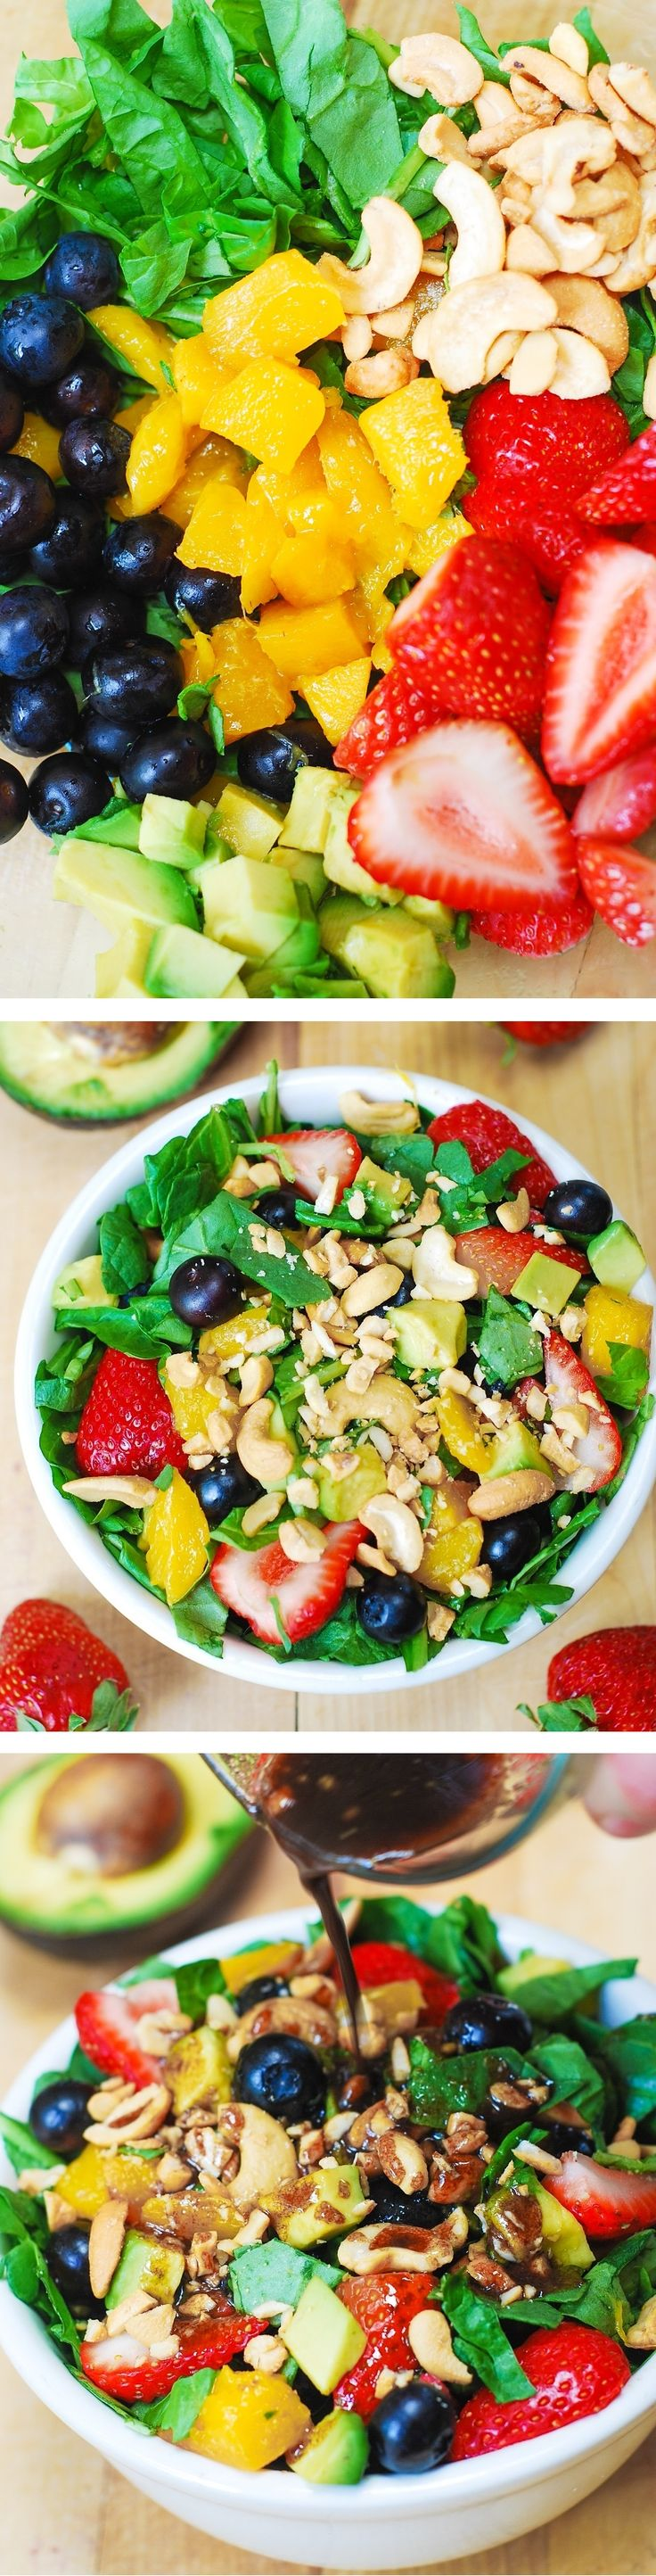 Strawberry Spinach Salad, with Blueberries, Mango, Avocado, and Cashew nuts + homemade Balsamic Vinaigrette salad dressing. Vegetarian, gluten-free, vegan, low in fat and low in calories. JuliasAlbum.com #healthy_recipes